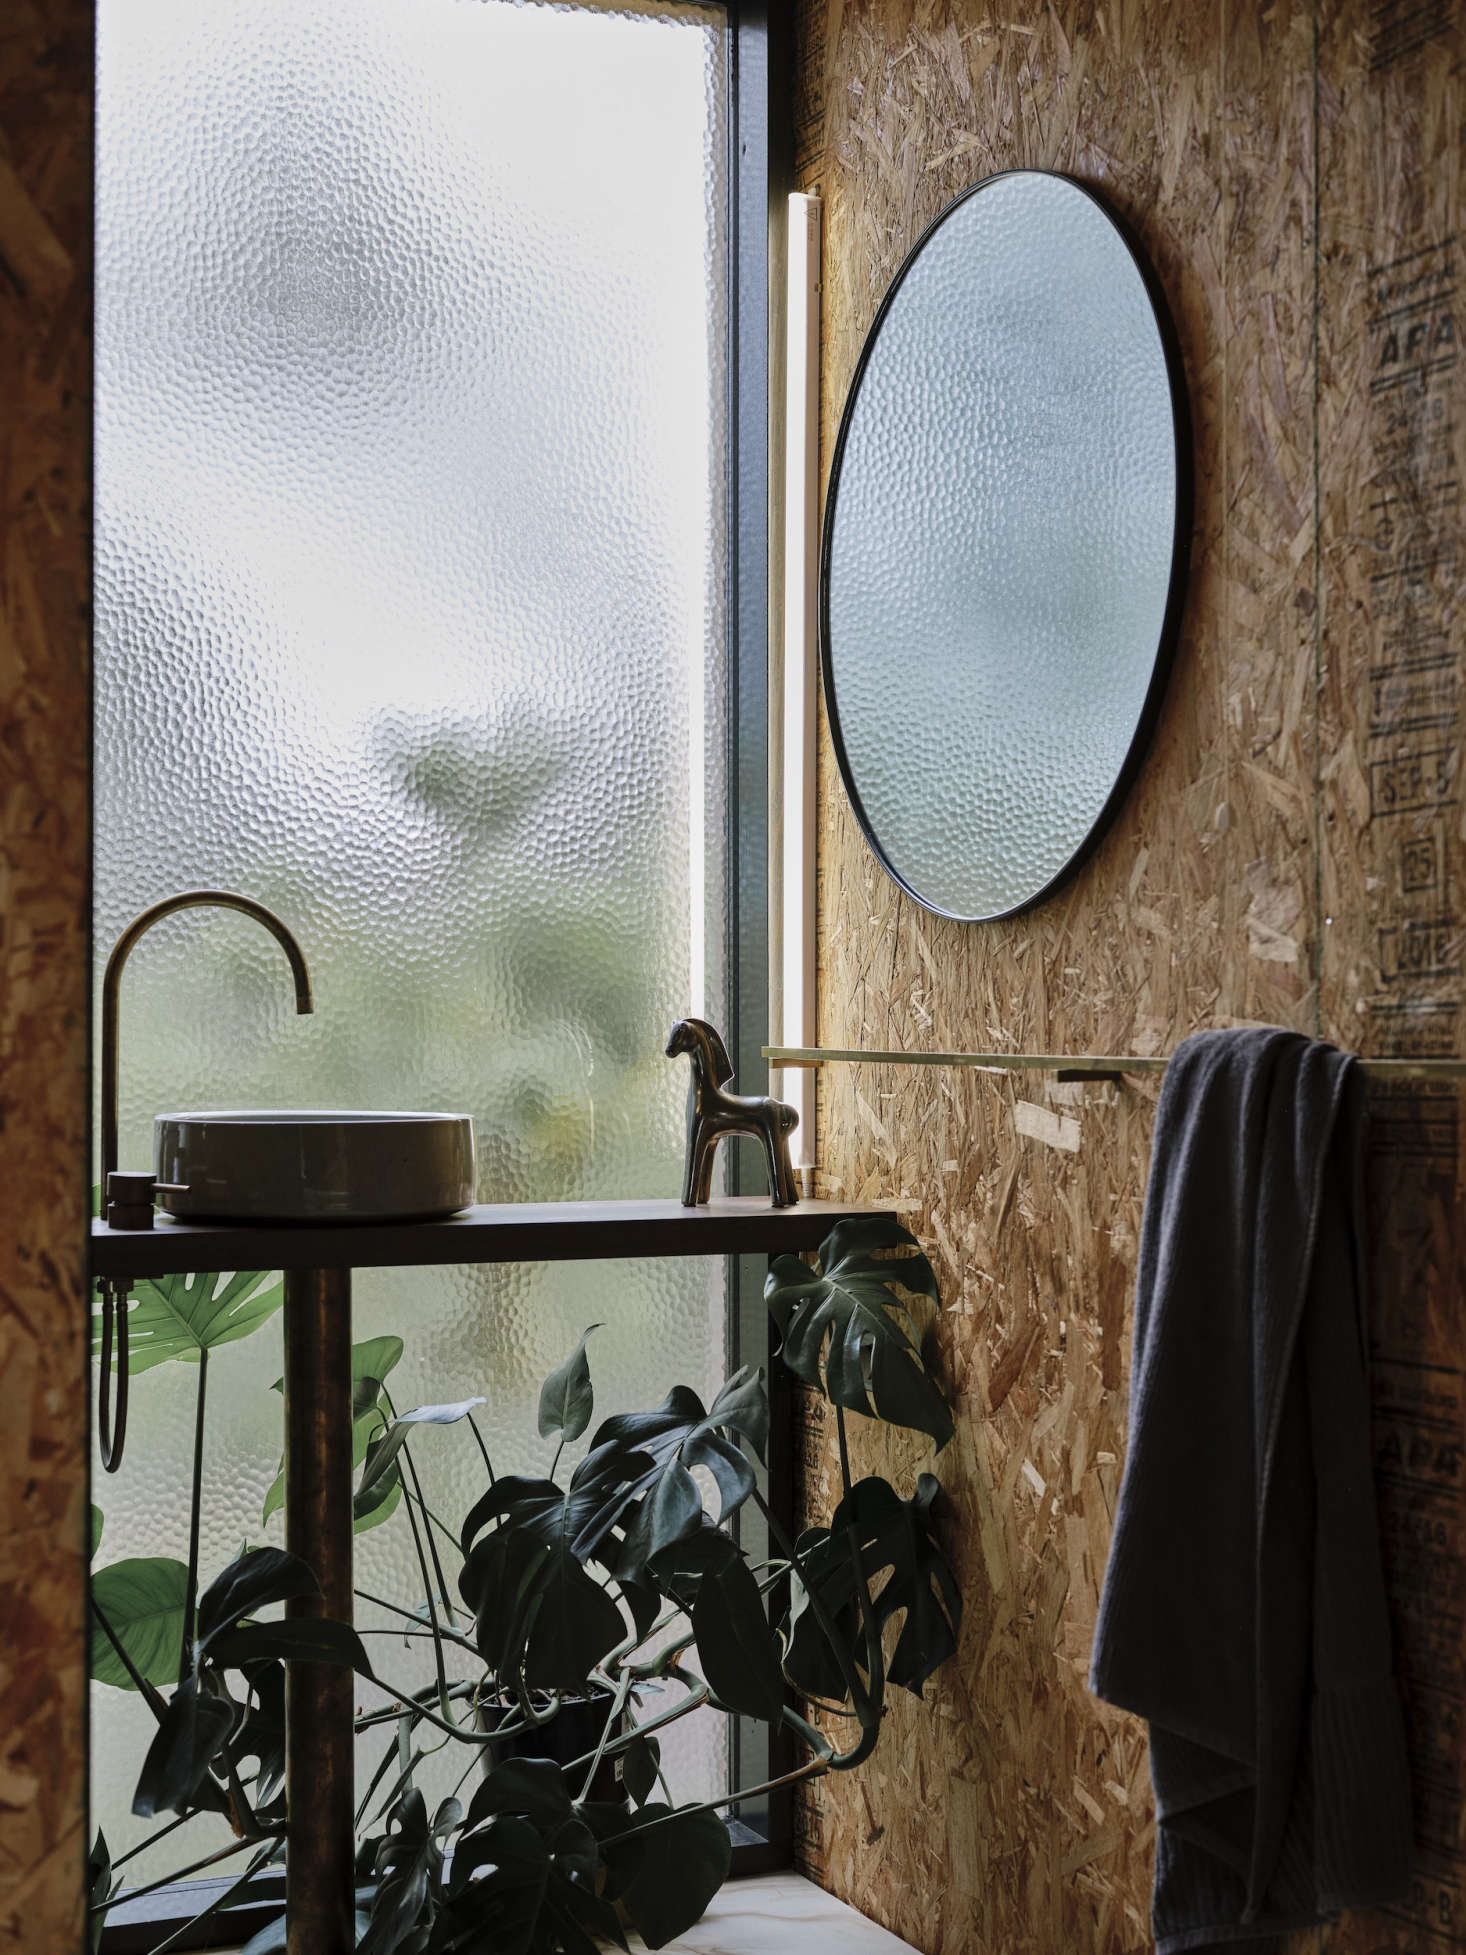 Textured glass allows privacy in the bathroom. The bathroom sink is by local ceramicist Lindsey Wherrett.